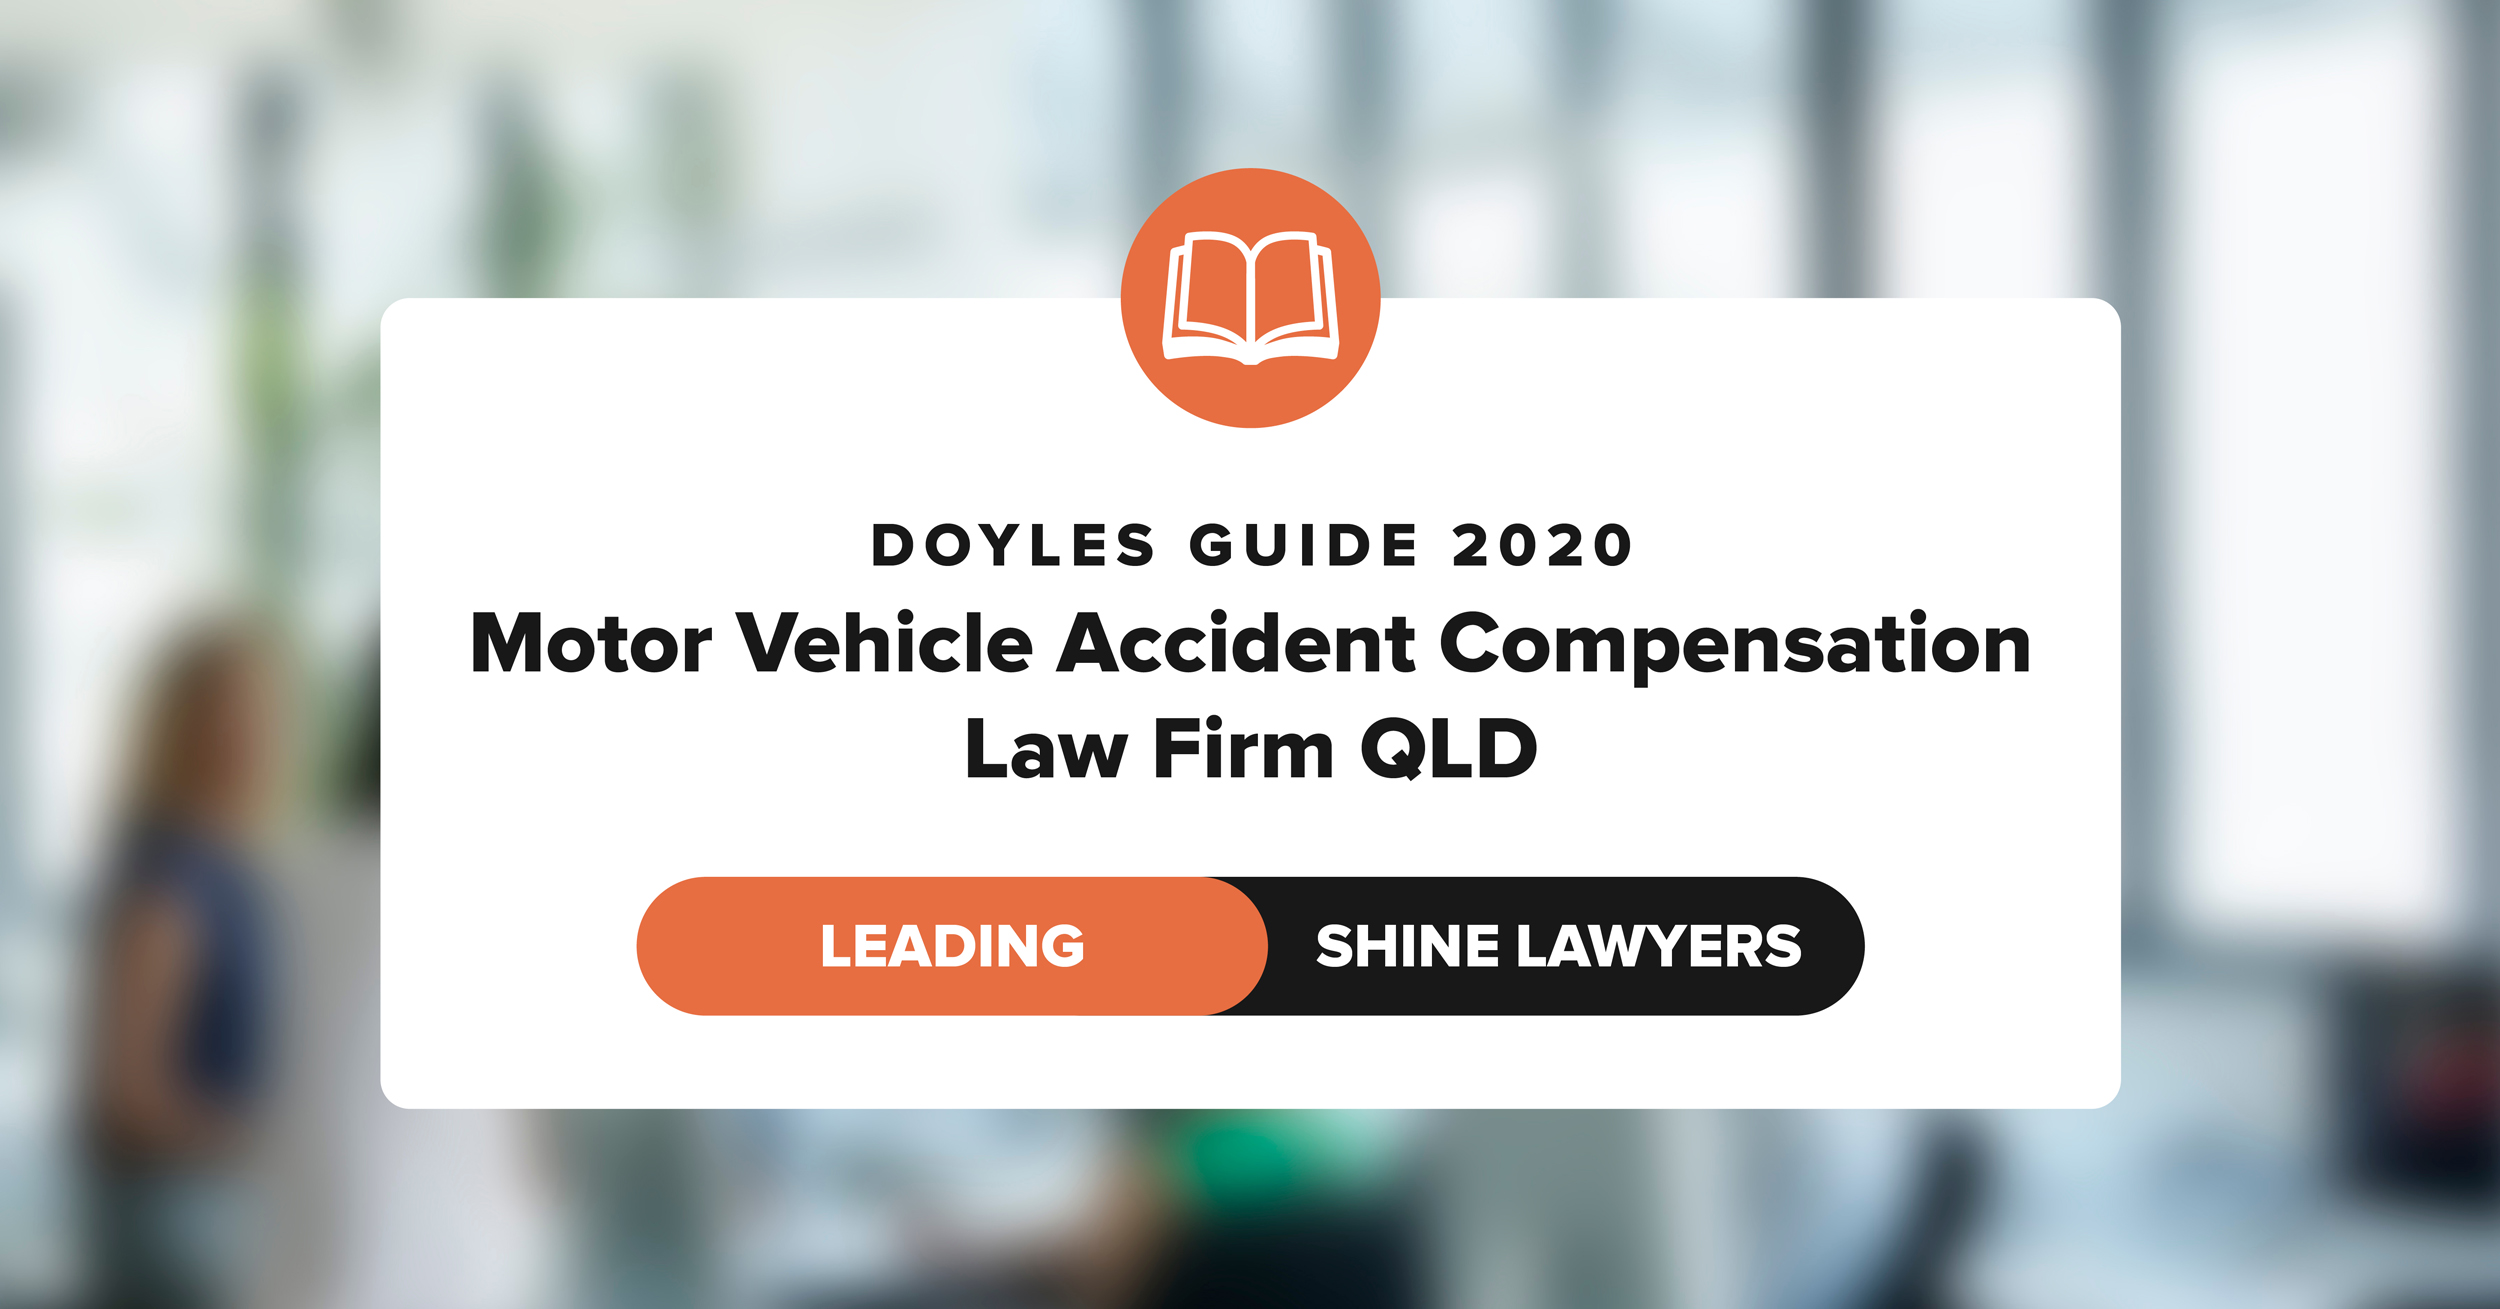 Doyles Guide 2020 Leading Motor Vehicle Accident Compensation Law Firm QLD